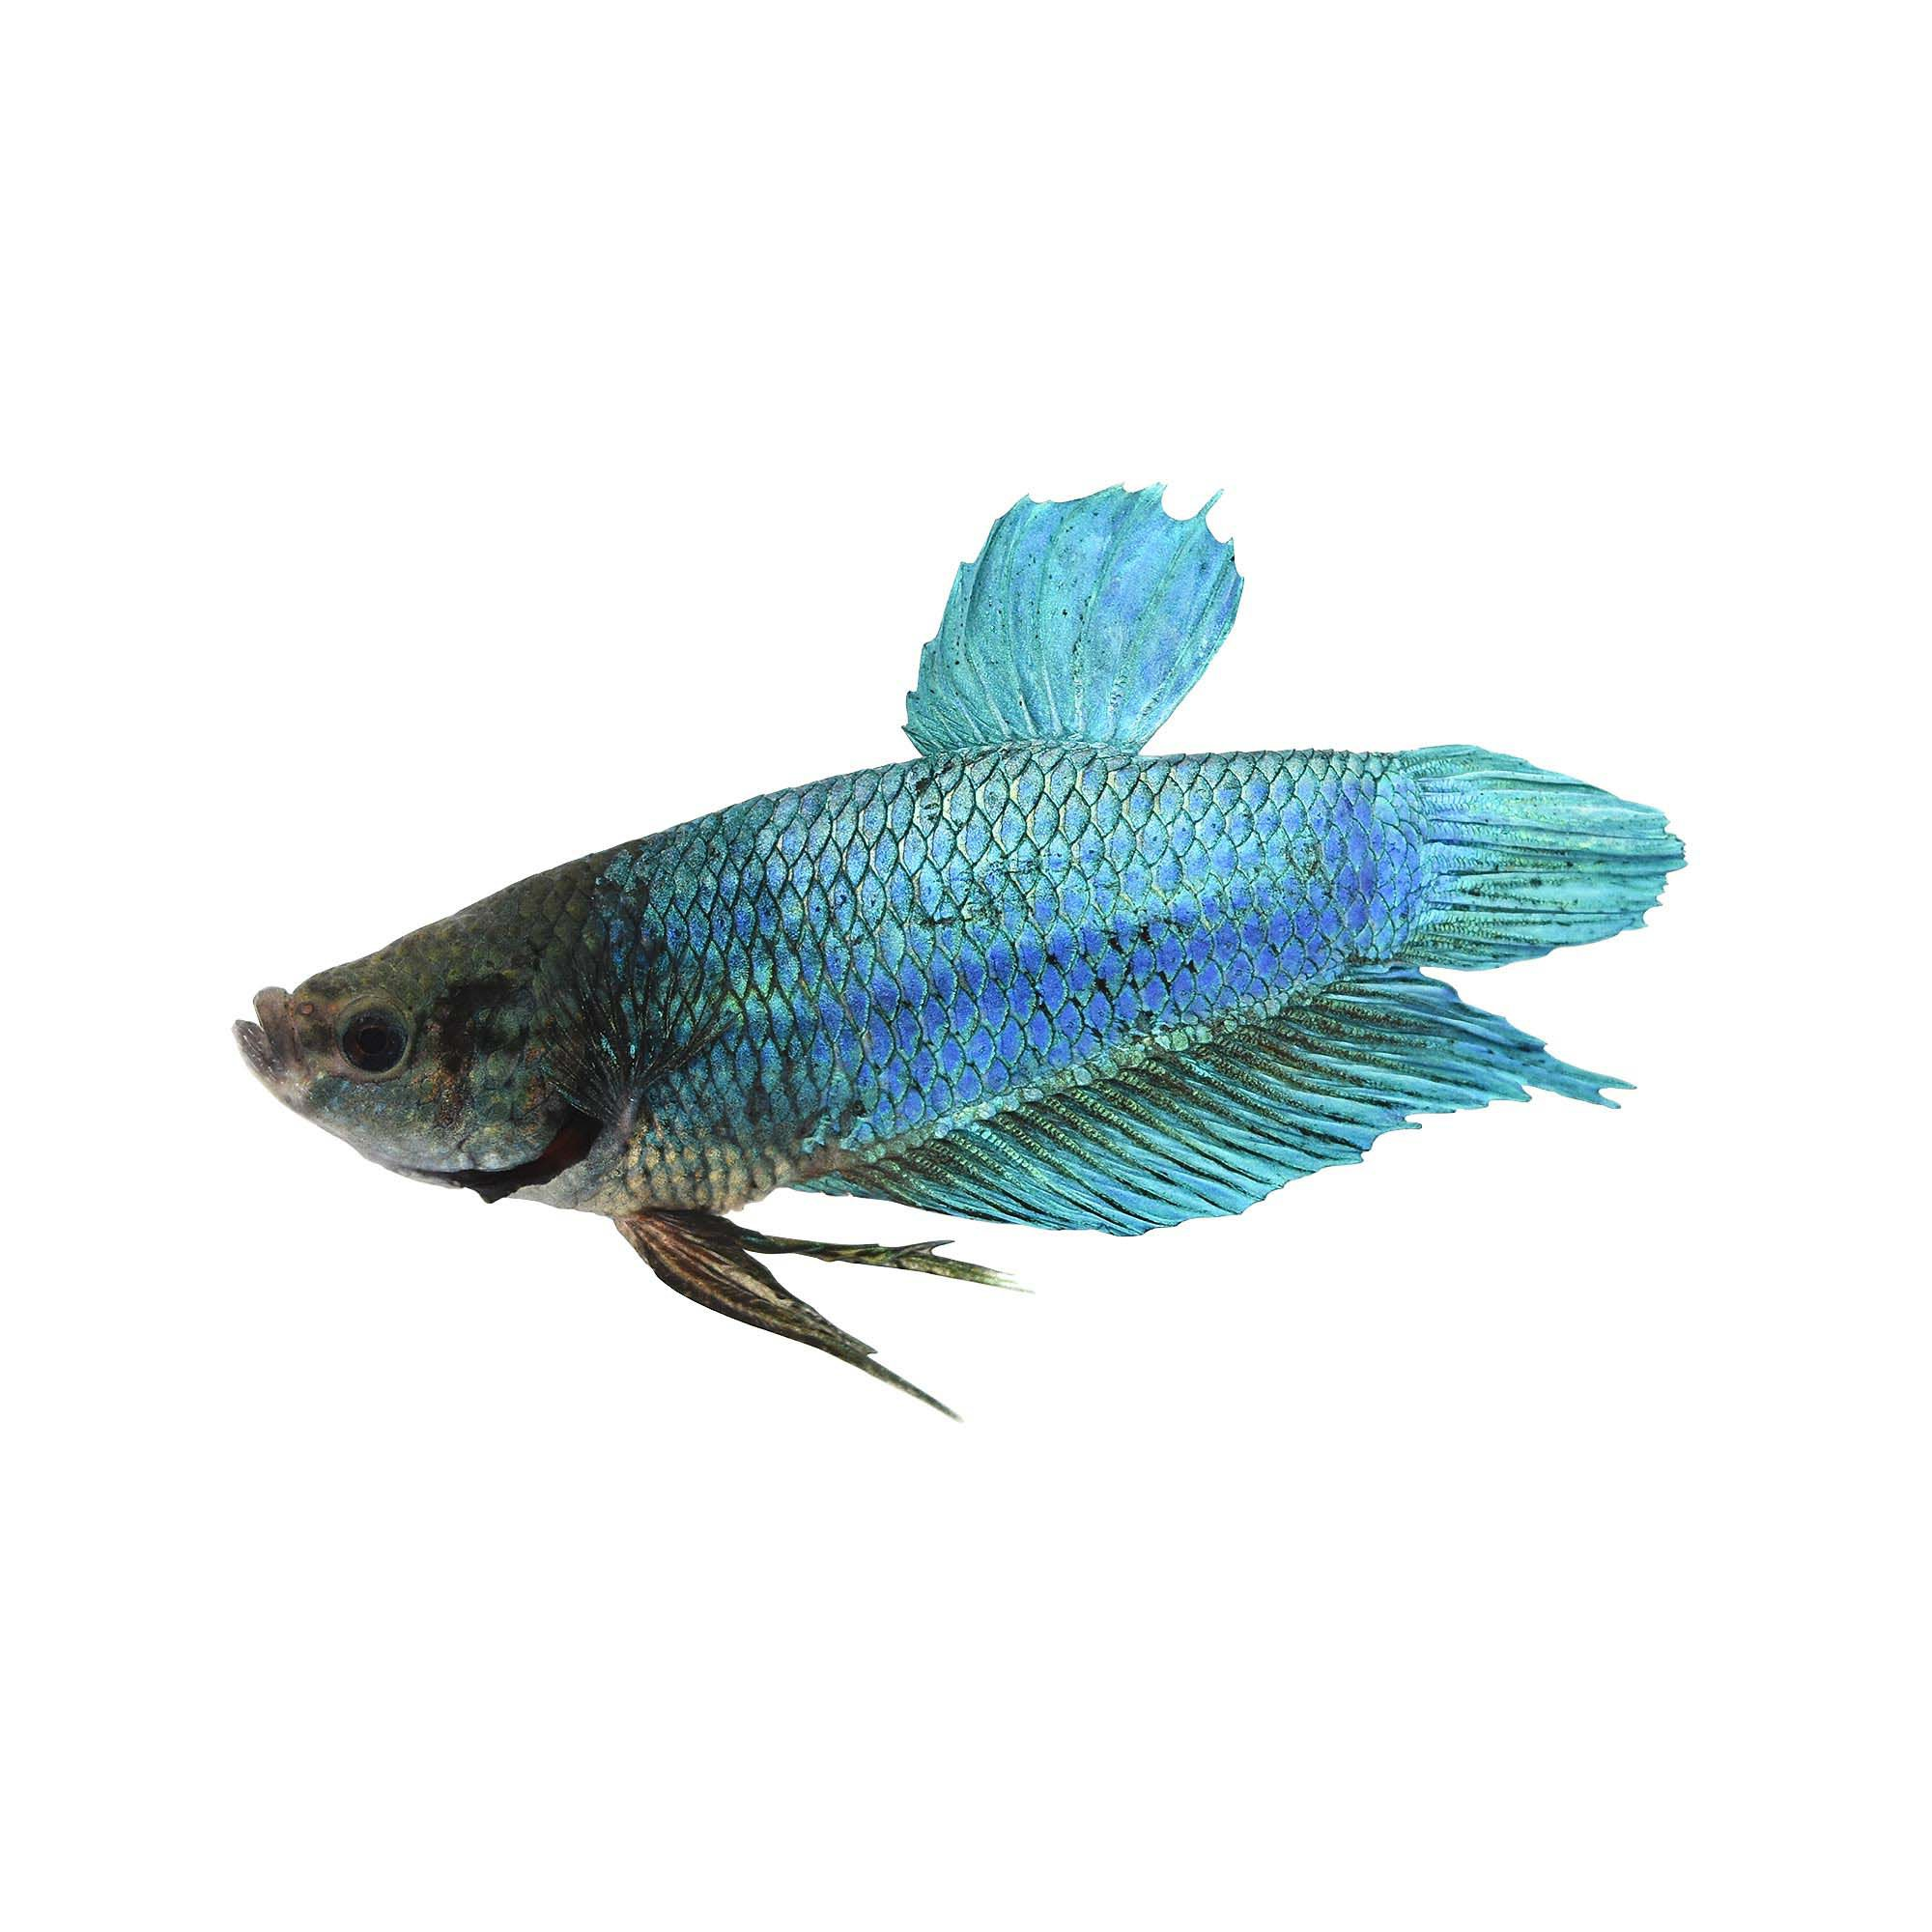 Male king betta fish petco for Types of betta fish petco